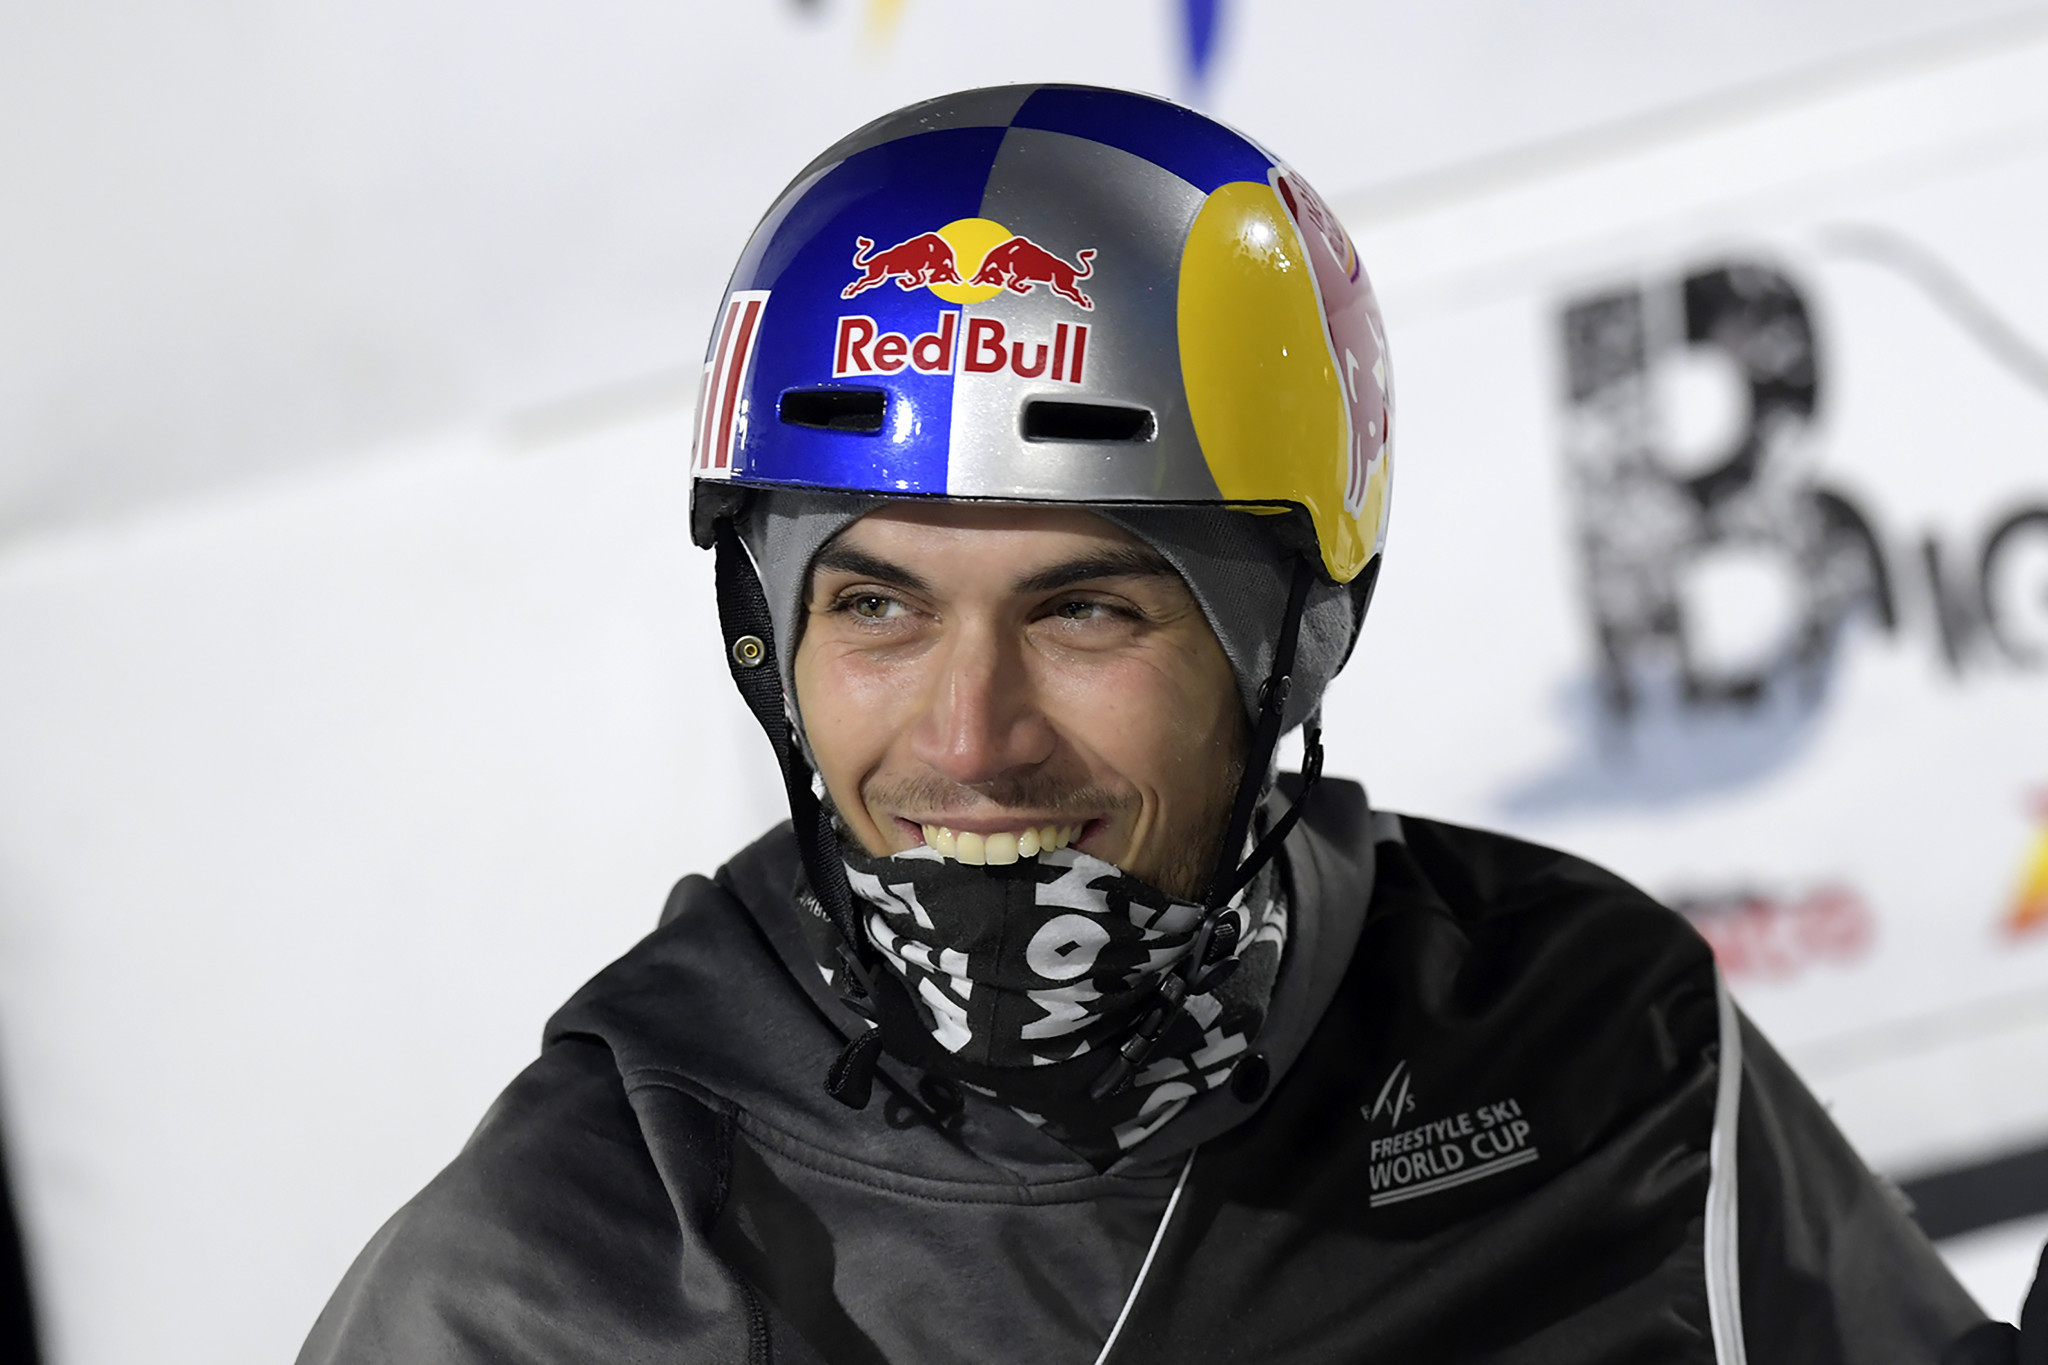 Joint leaders both reach final at FIS Big Air World Cup